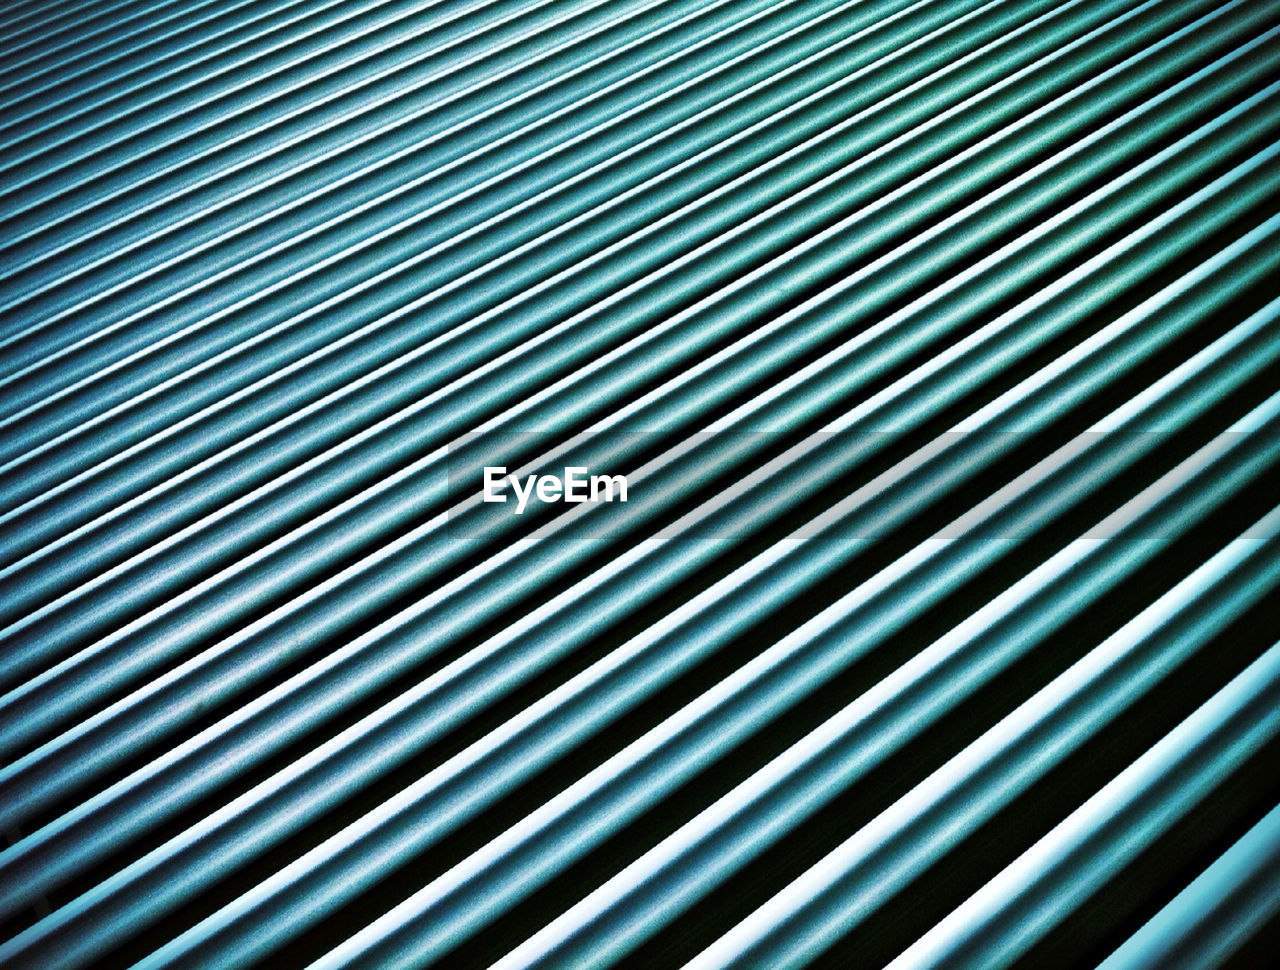 Full frame shot of blue metal rods